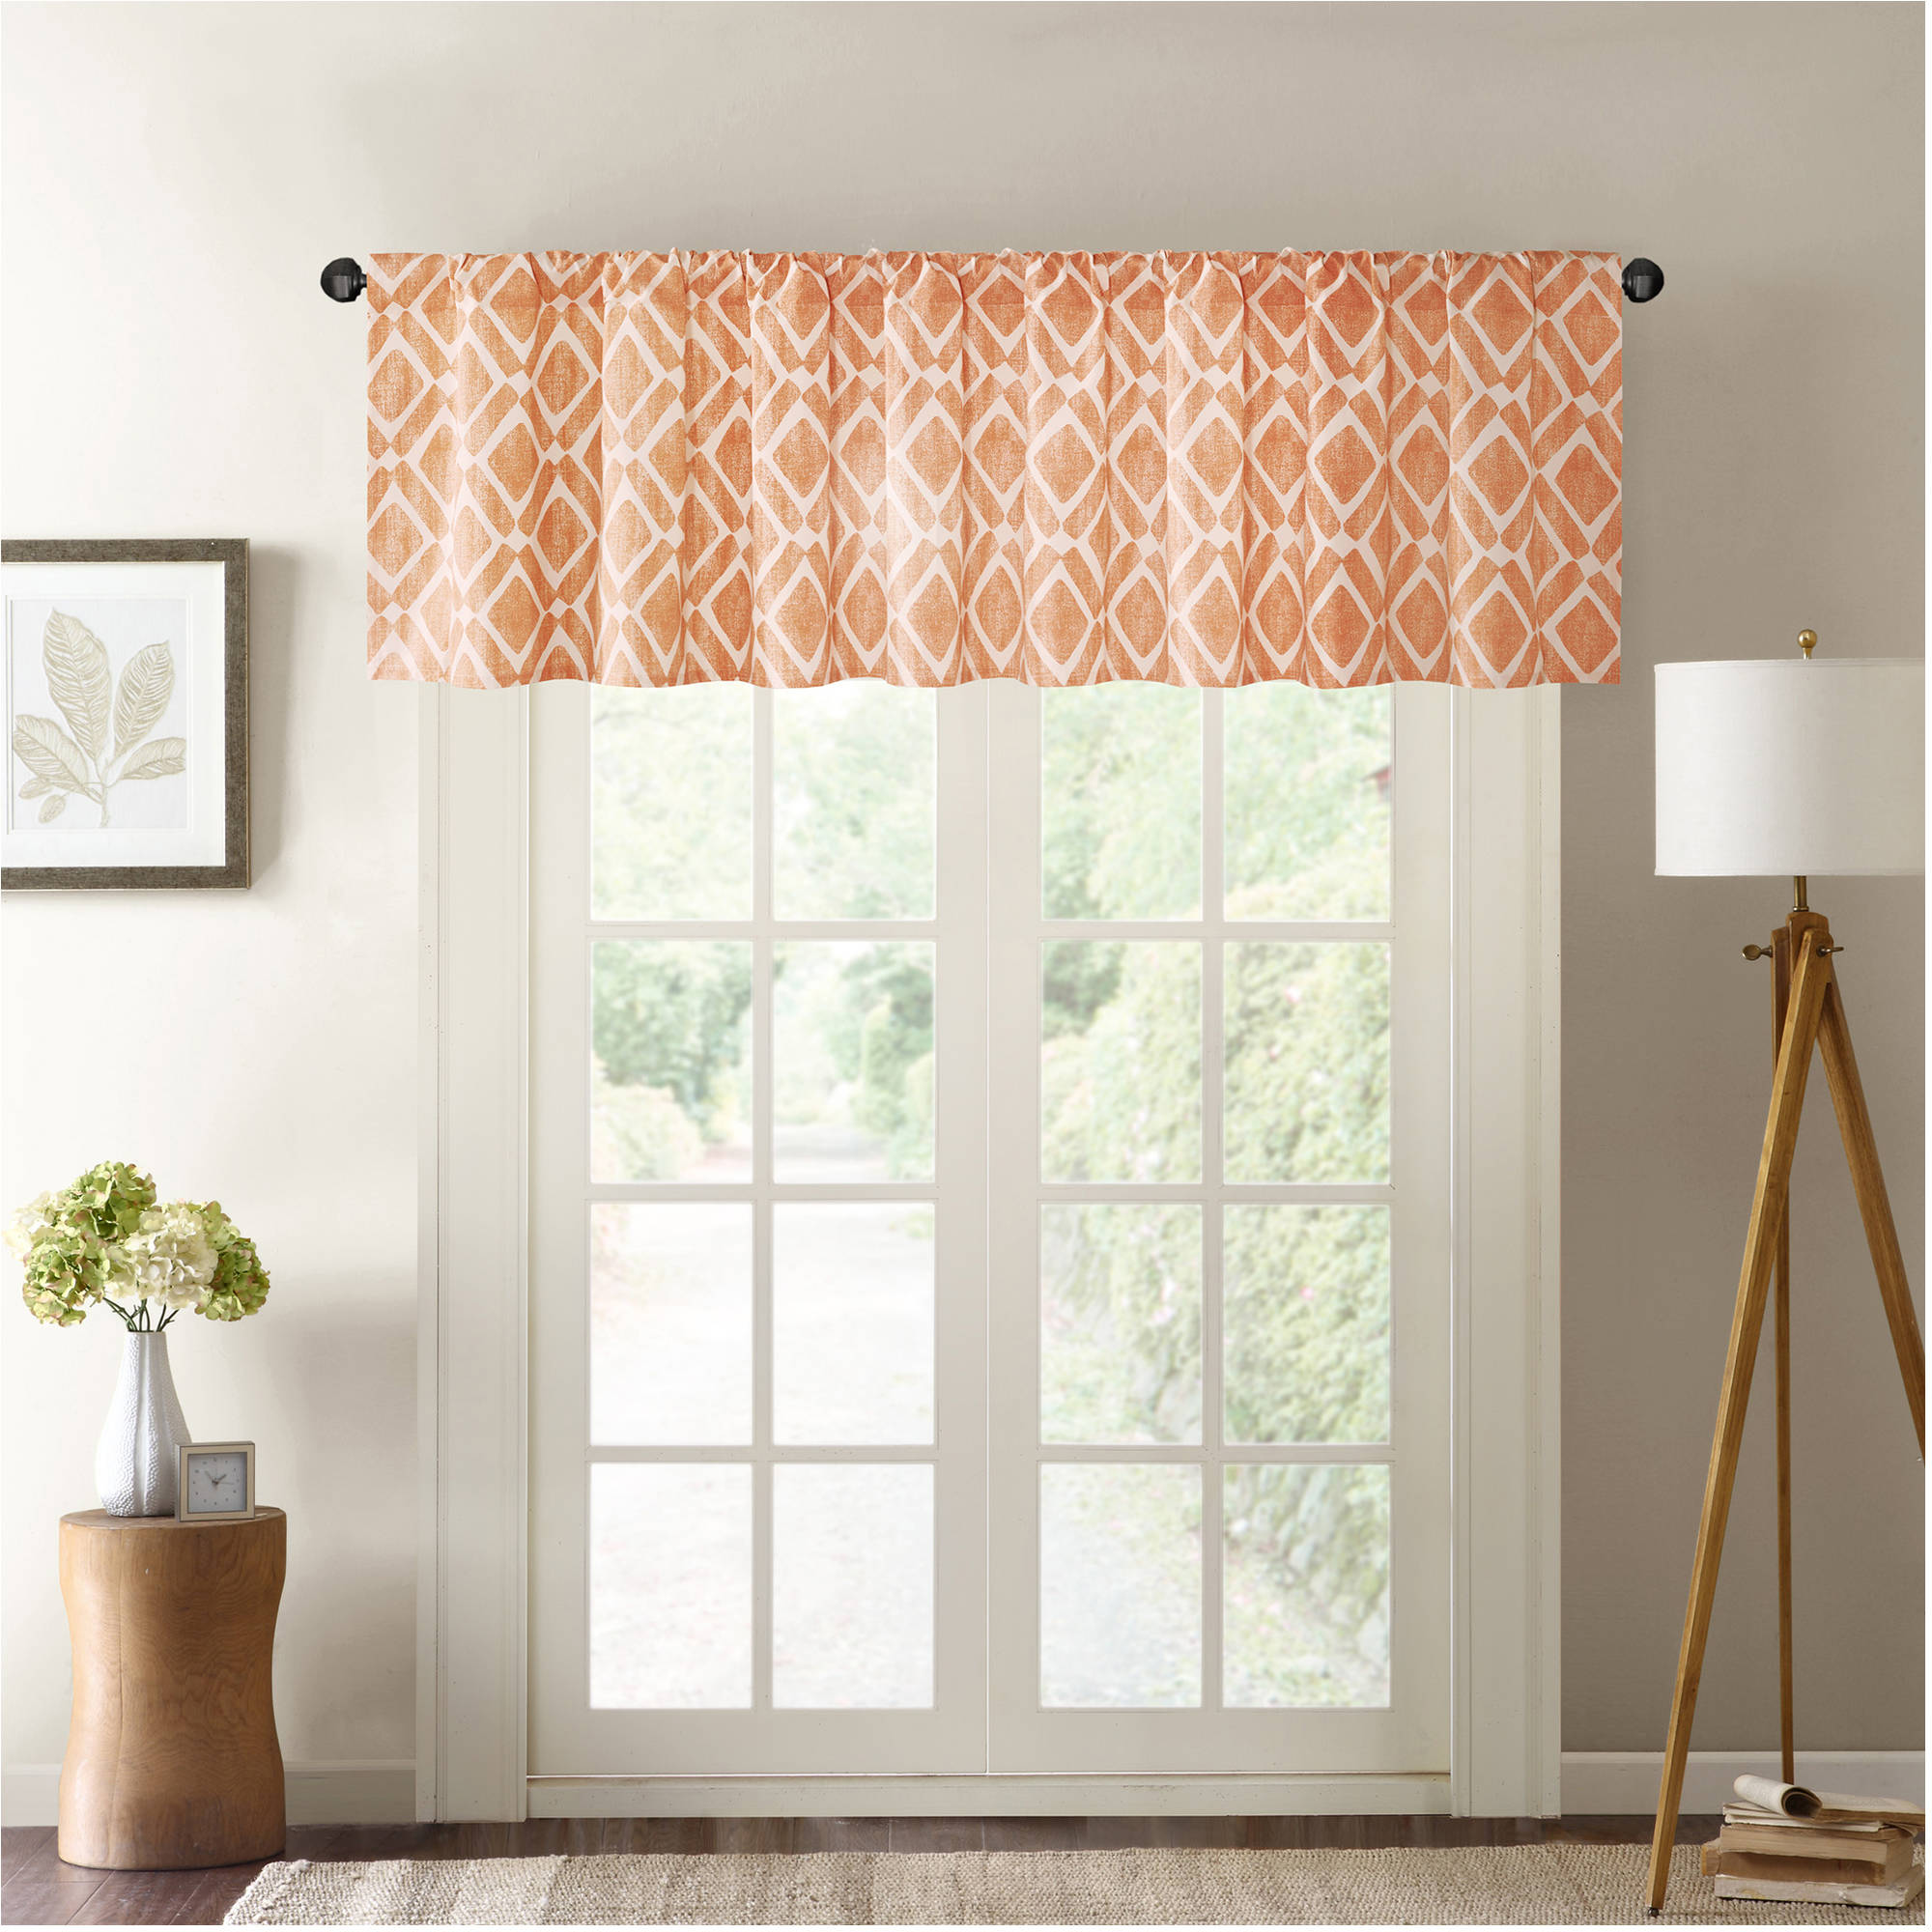 trim window swag windows with pin asymmetrical valances and treatment for cascade valance beaded